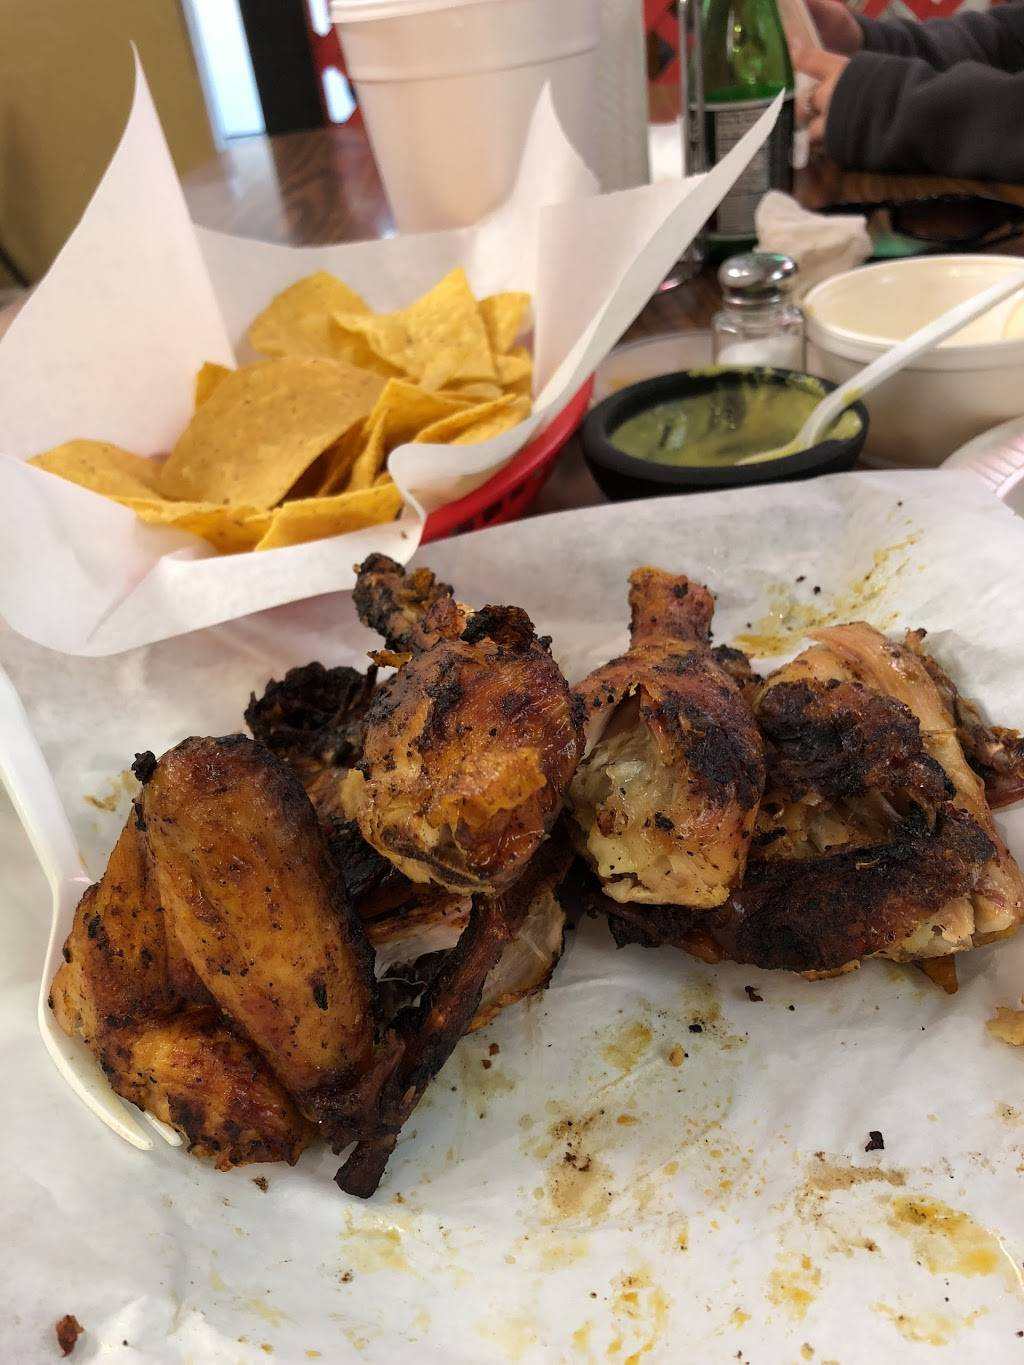 Pollos Asados Rey Regio | restaurant | 646 10th St, Hempstead, TX 77445, USA | 9799215023 OR +1 979-921-5023